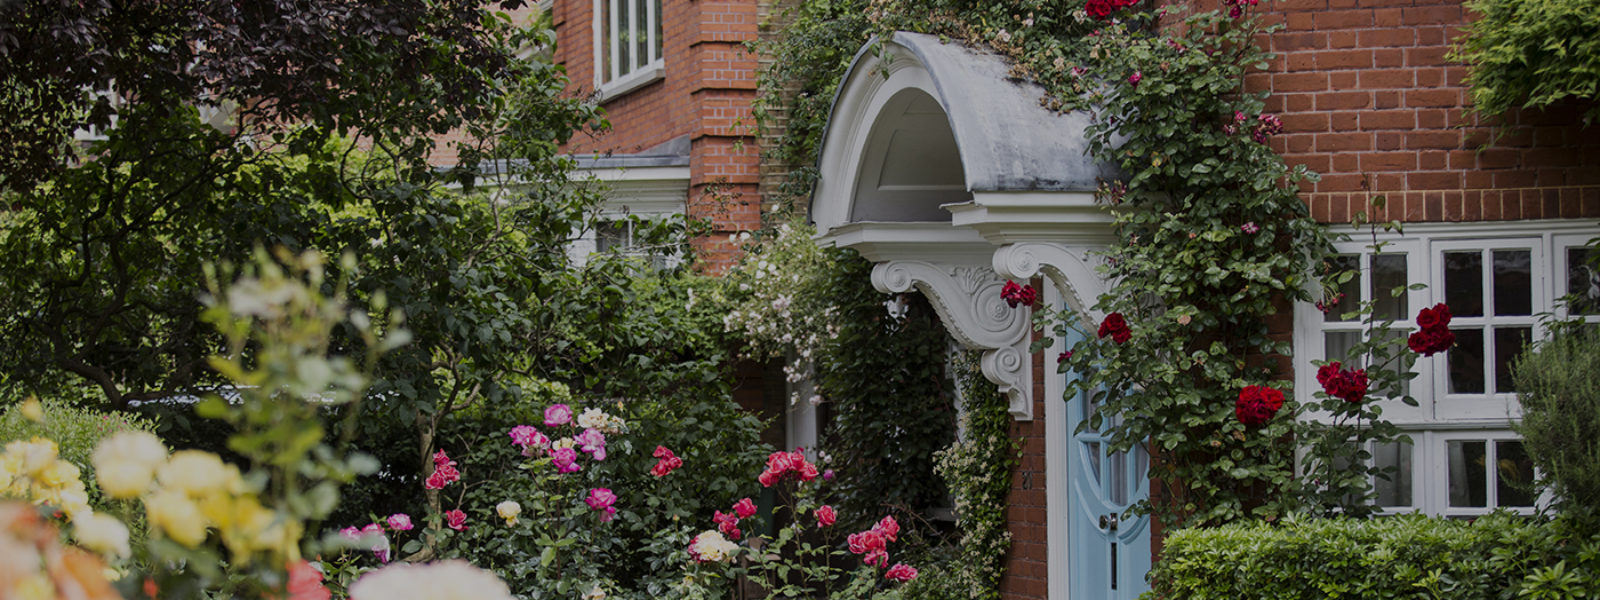 Front garden of the Freud Museum, with roses in bloom